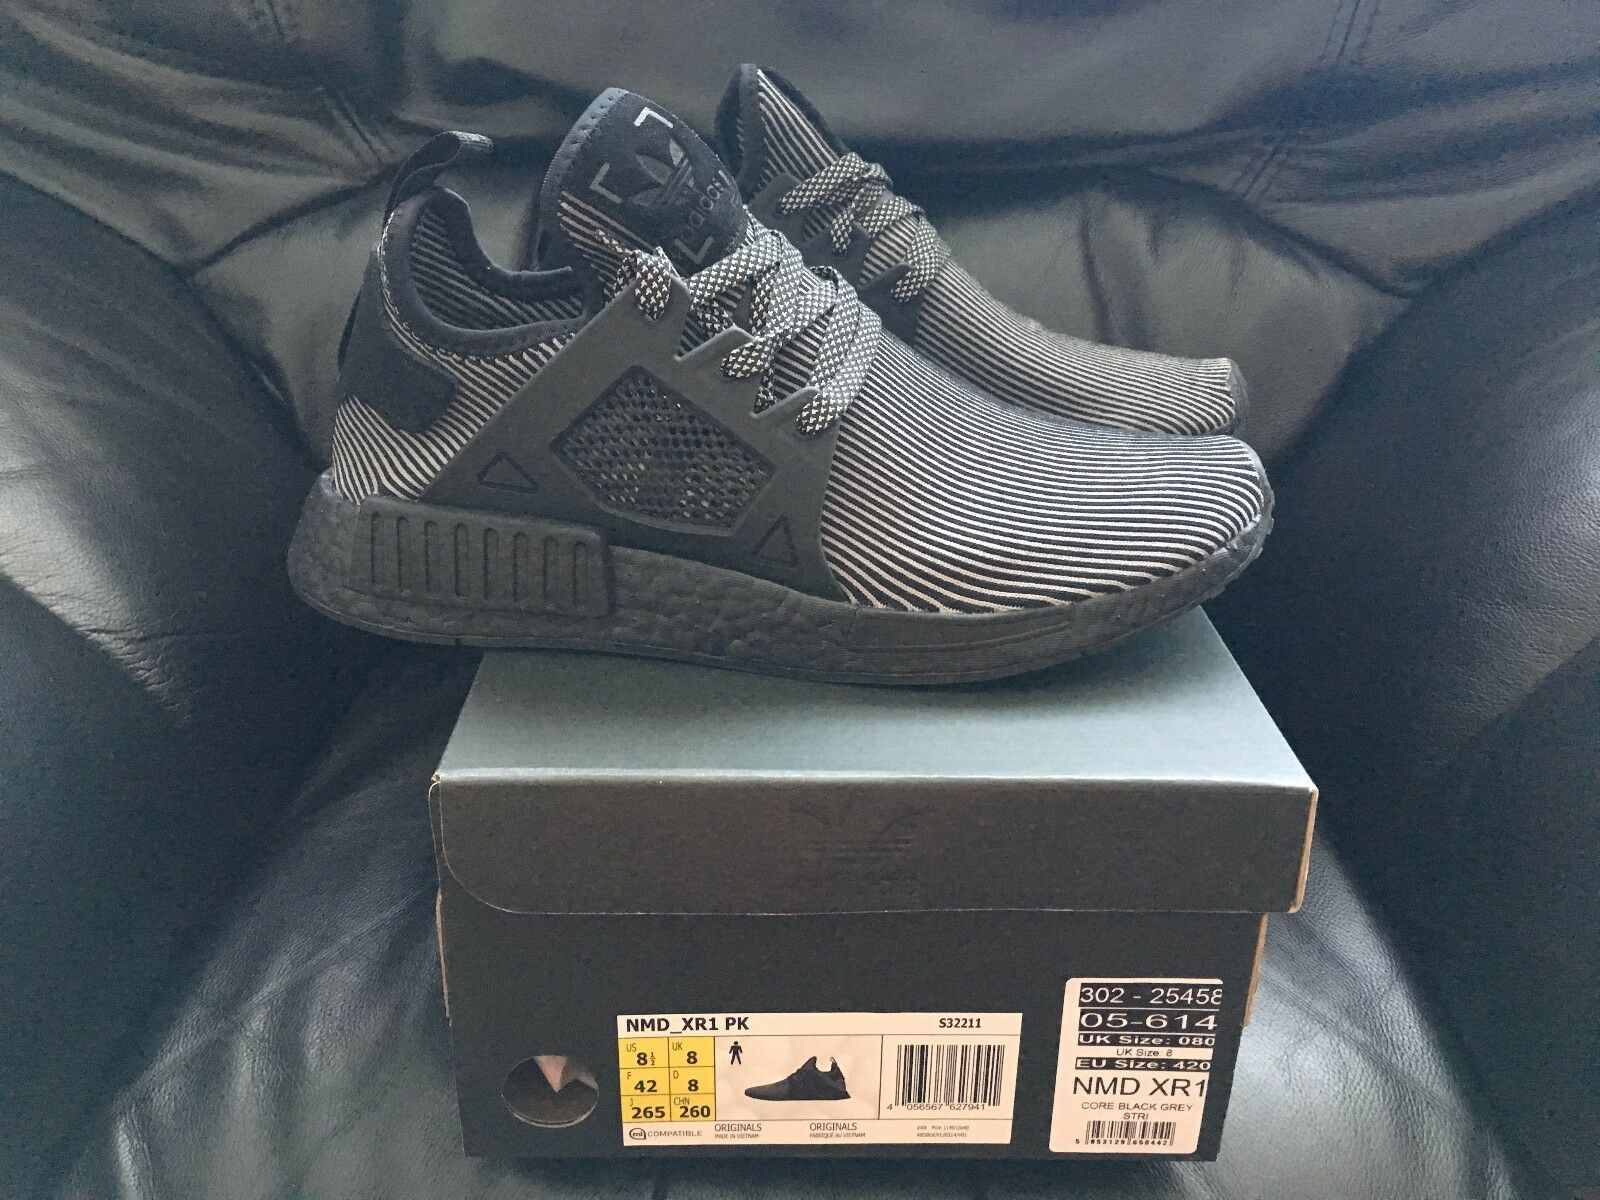 ADIDAS NMD XR1 courirNER TRIPLE noir PRIMEKNIT TailleS7 & 8 NEW